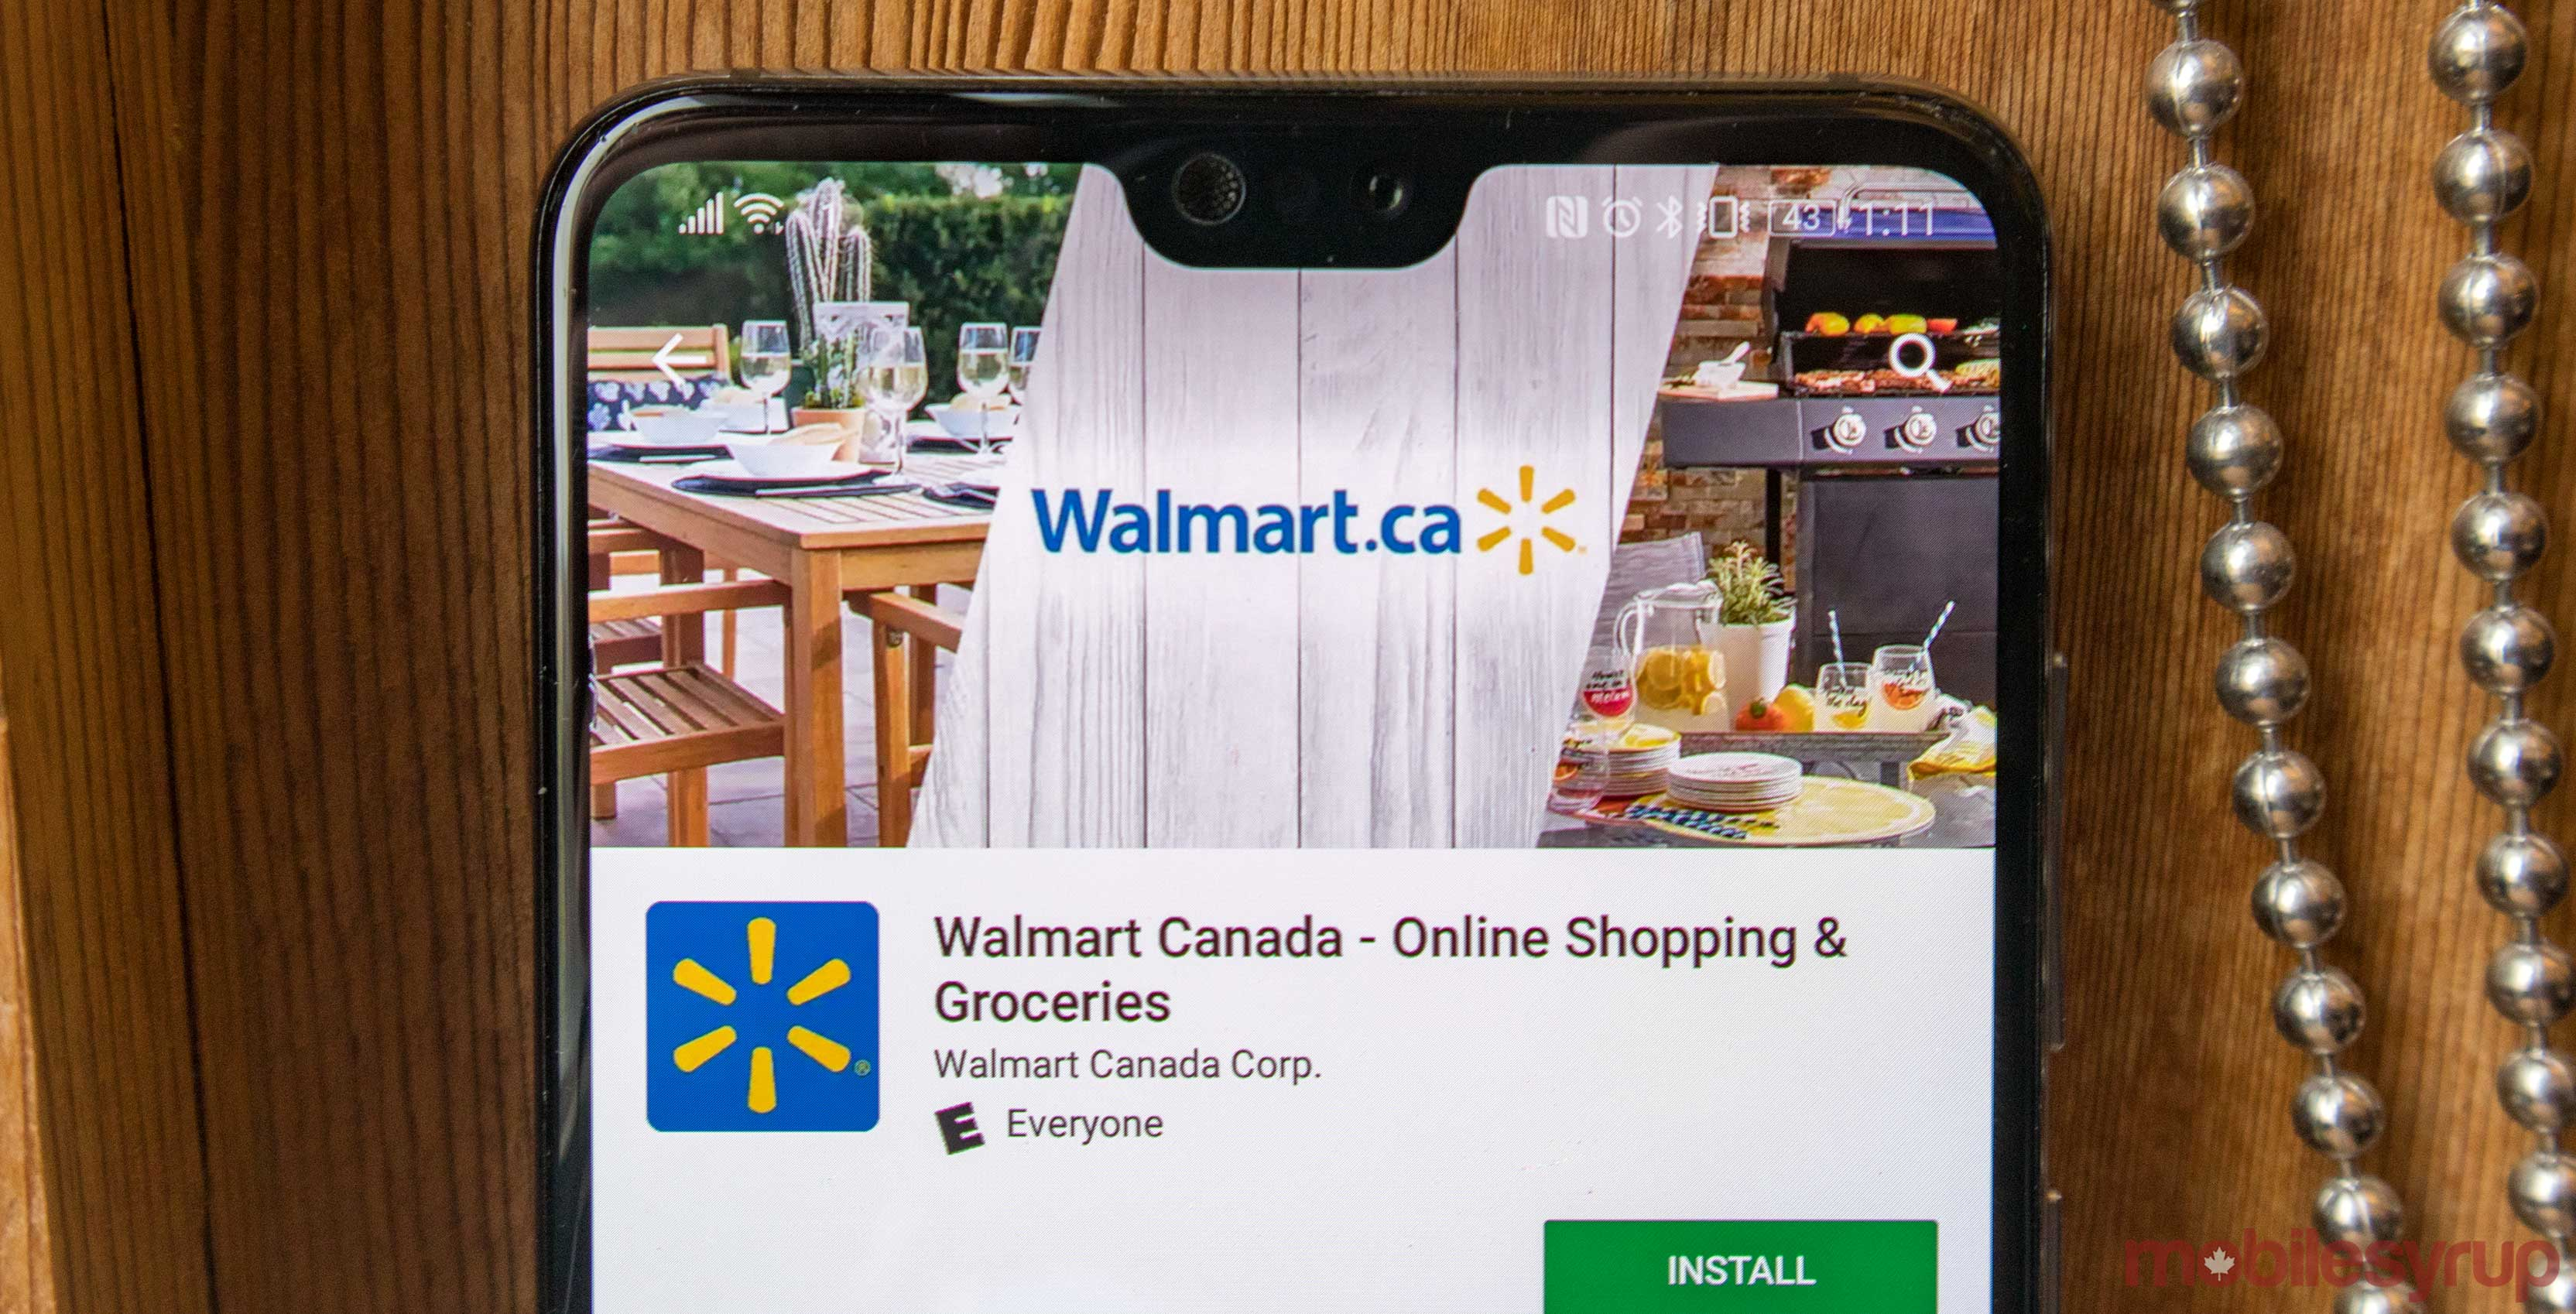 de9b32589c Walmart Canada is expanding its online grocery ordering service to Manitoba  on August 14th.